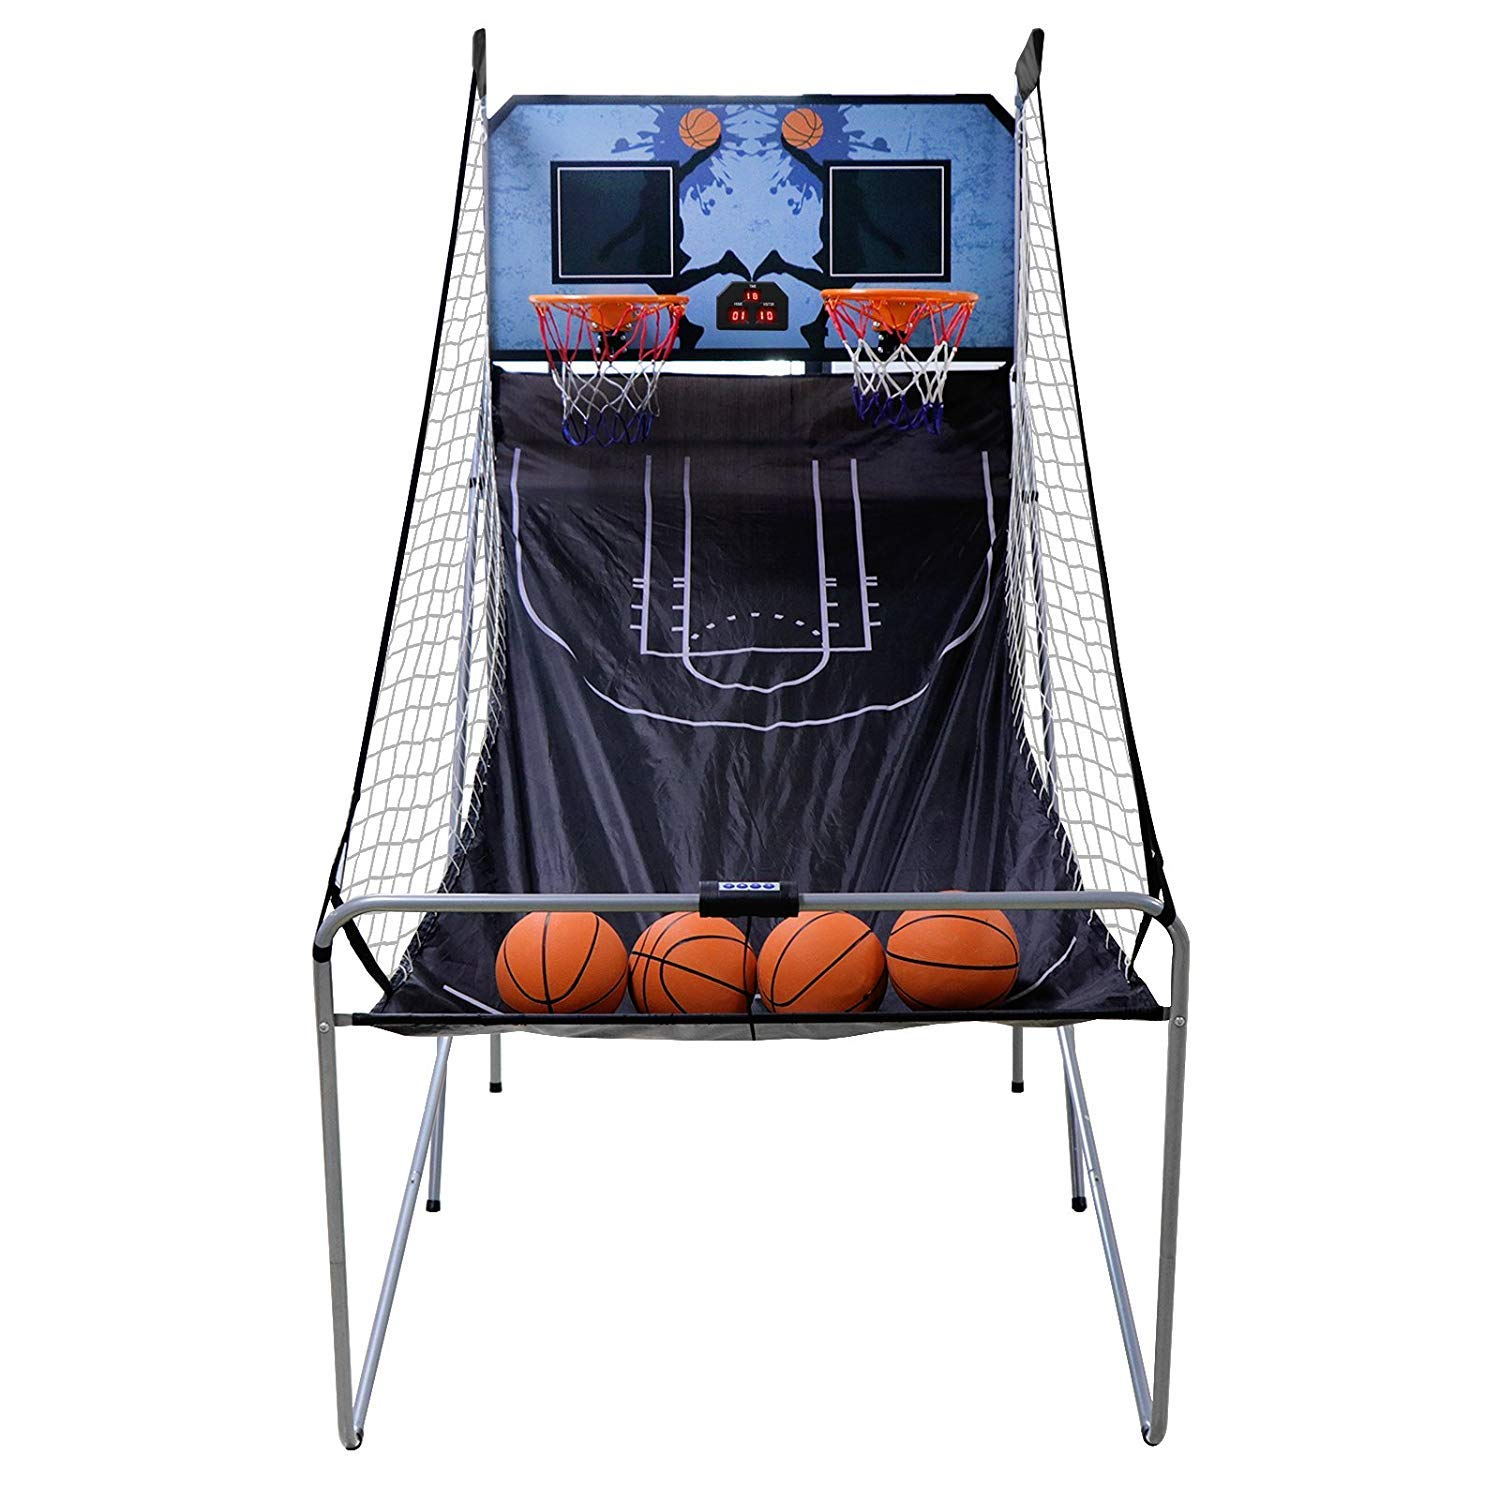 Saturnpower Shot Creator Indoor Basketball Arcade Game Foldable Electronic Double Shootout Sport Game 2 Player with 4 Balls by Saturnpower